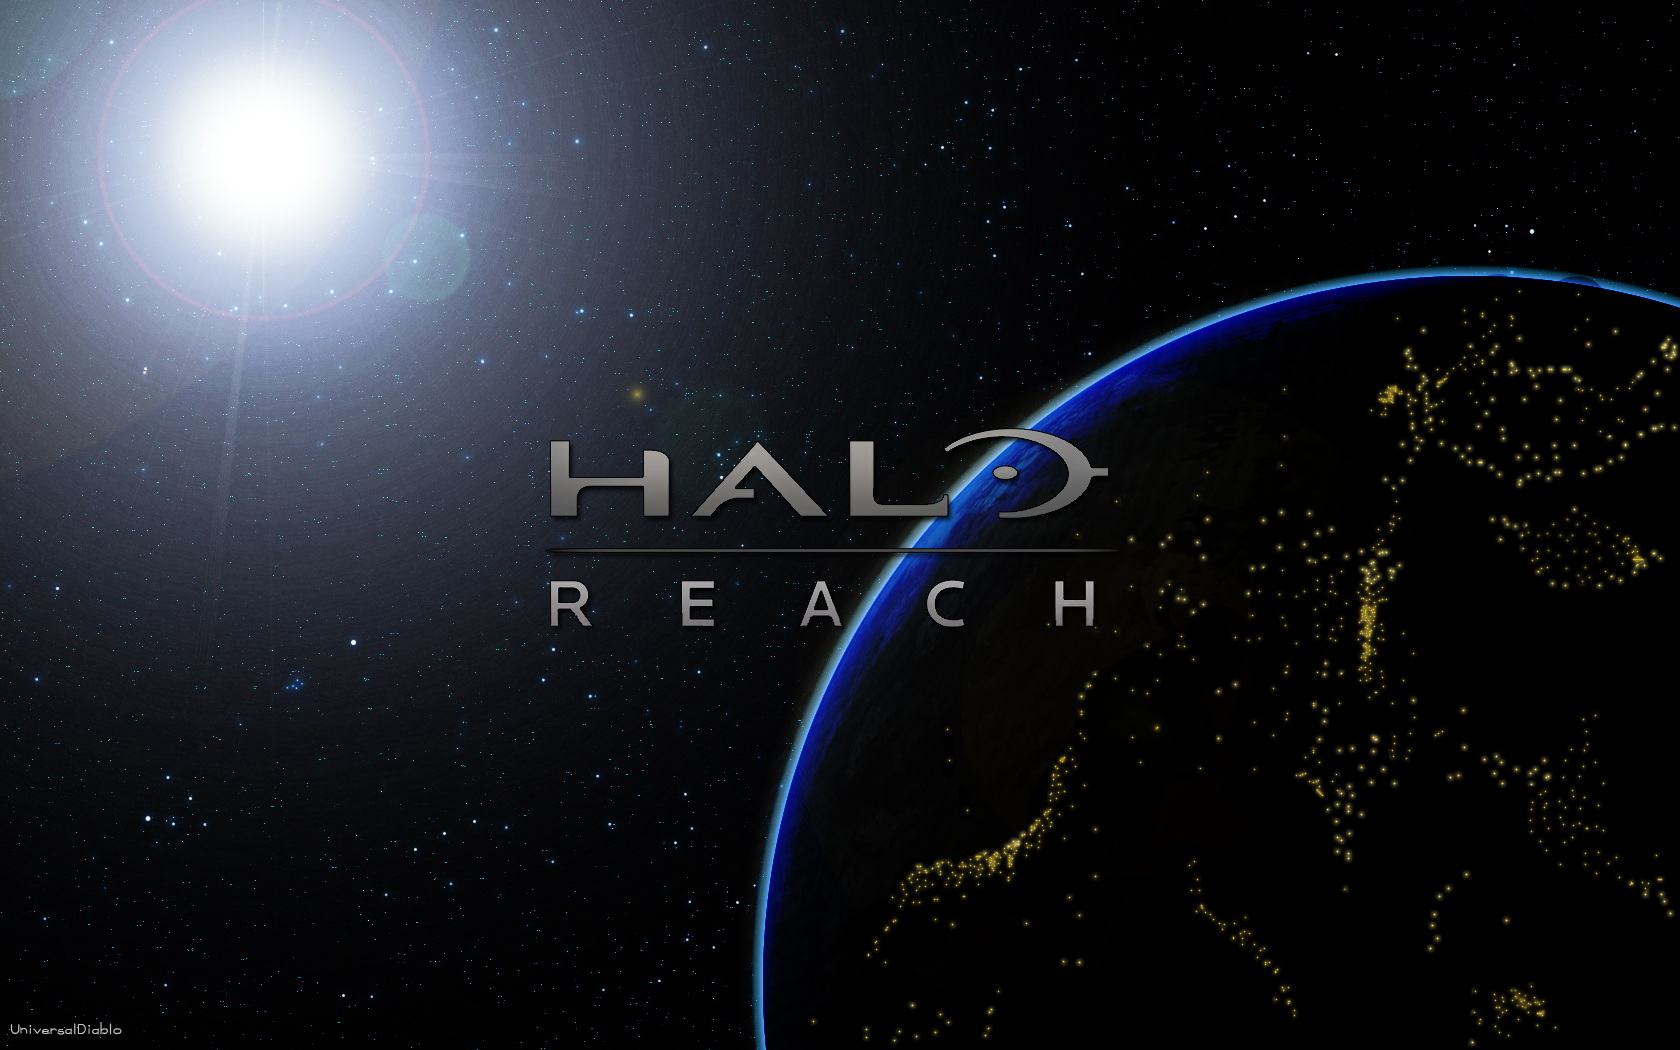 Halo Reach - Fond d'écran (Wallpaper/Thème) Halo_Reach_Wallpaper_v2_by_UniversalDiablo